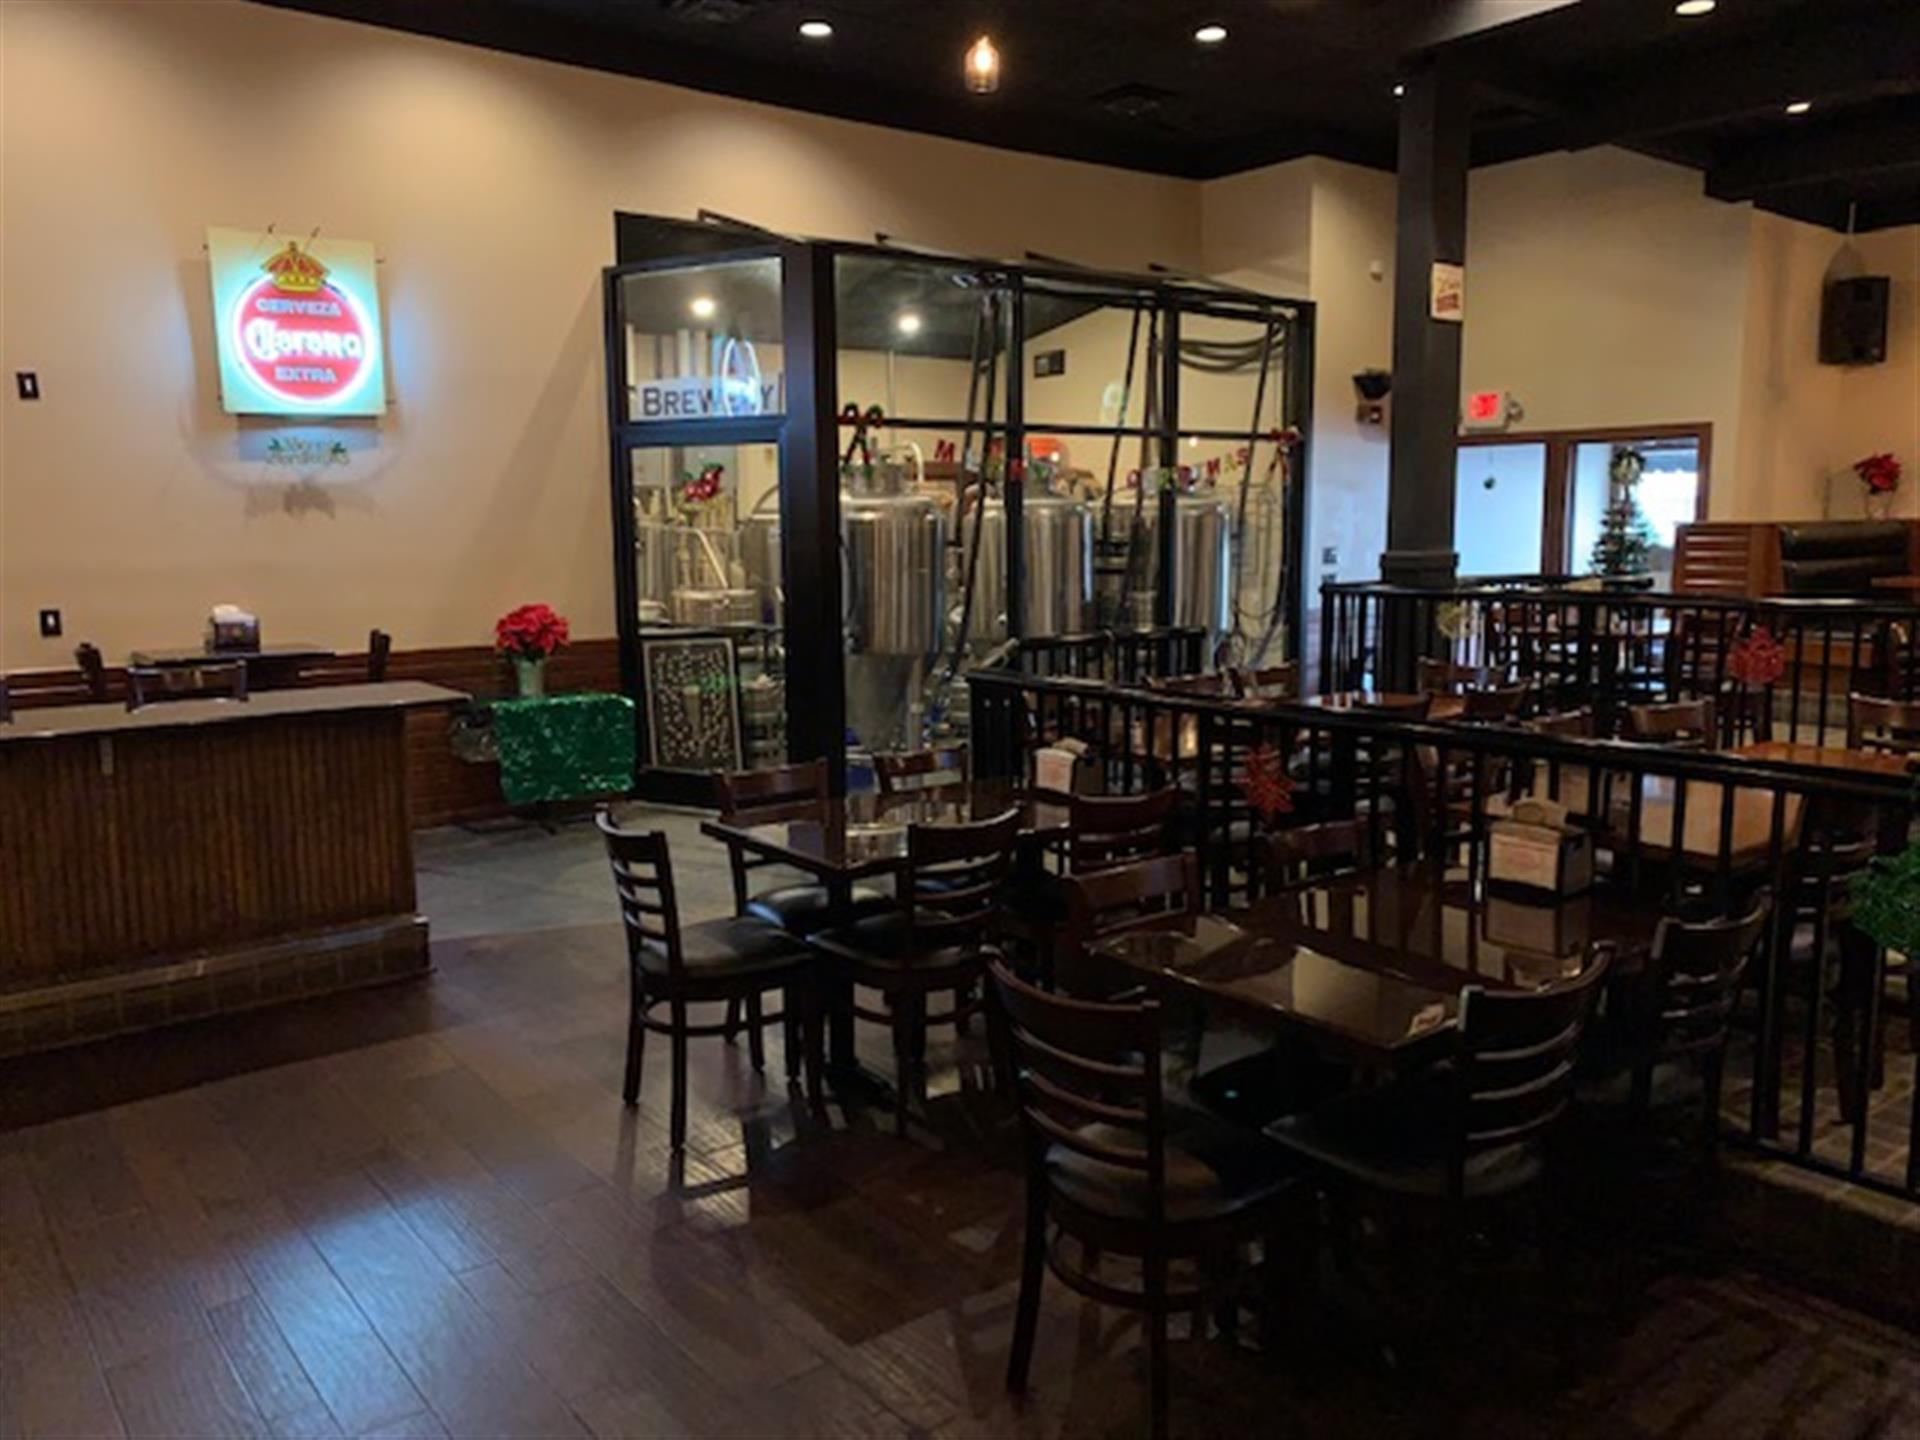 tables and chairs in the event space with an area in the back for the brewing